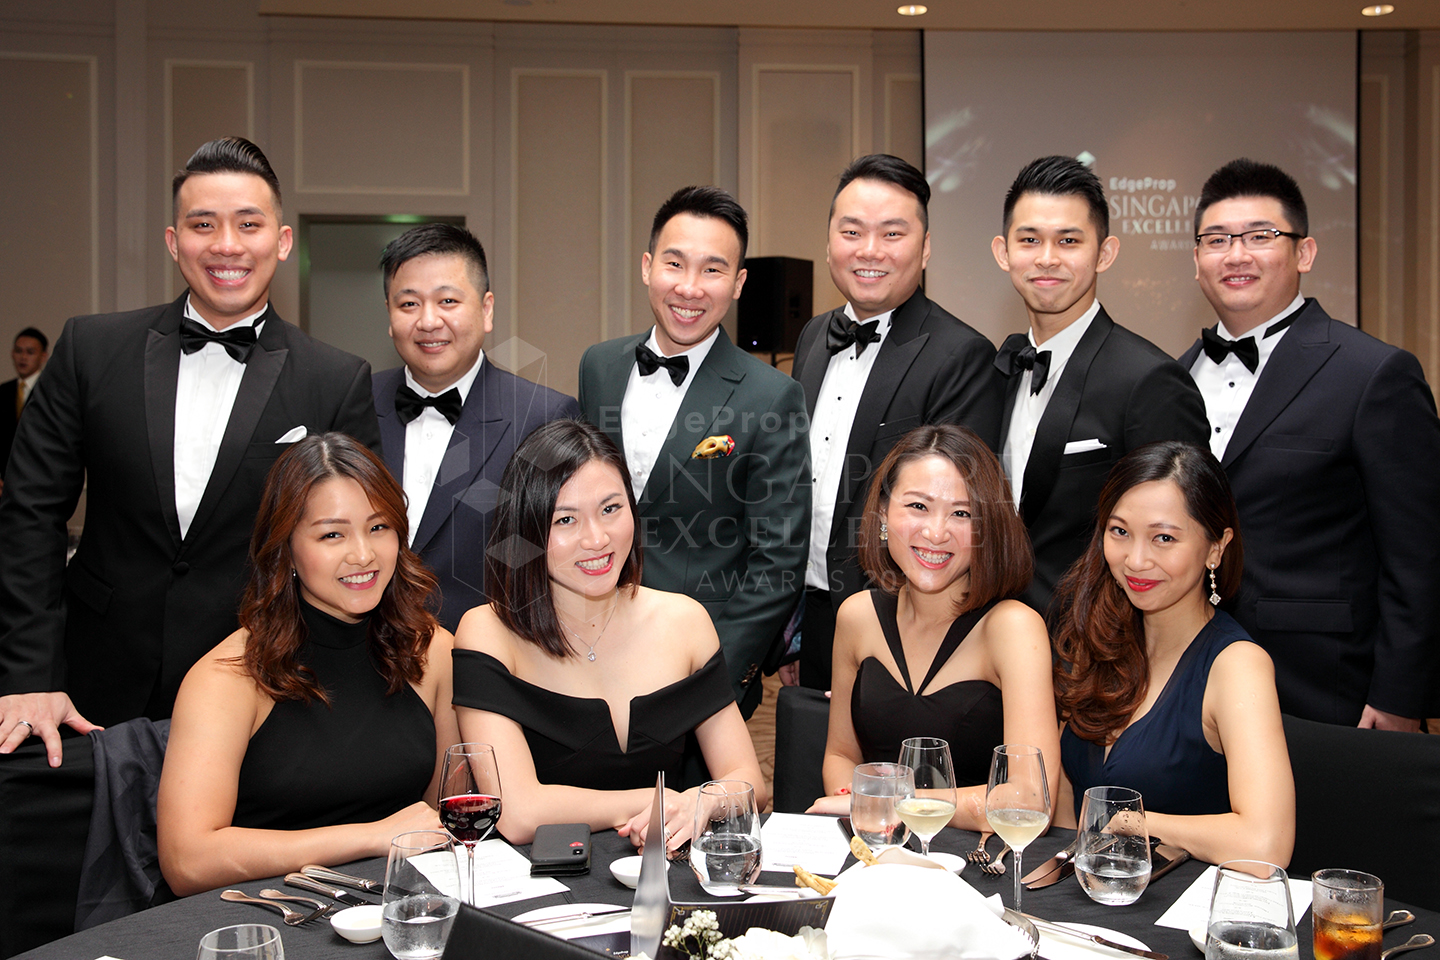 LEI_EDGEPROP_EXCELLENCE_AWARDS_2018_TABLE_01_SIC.jpg